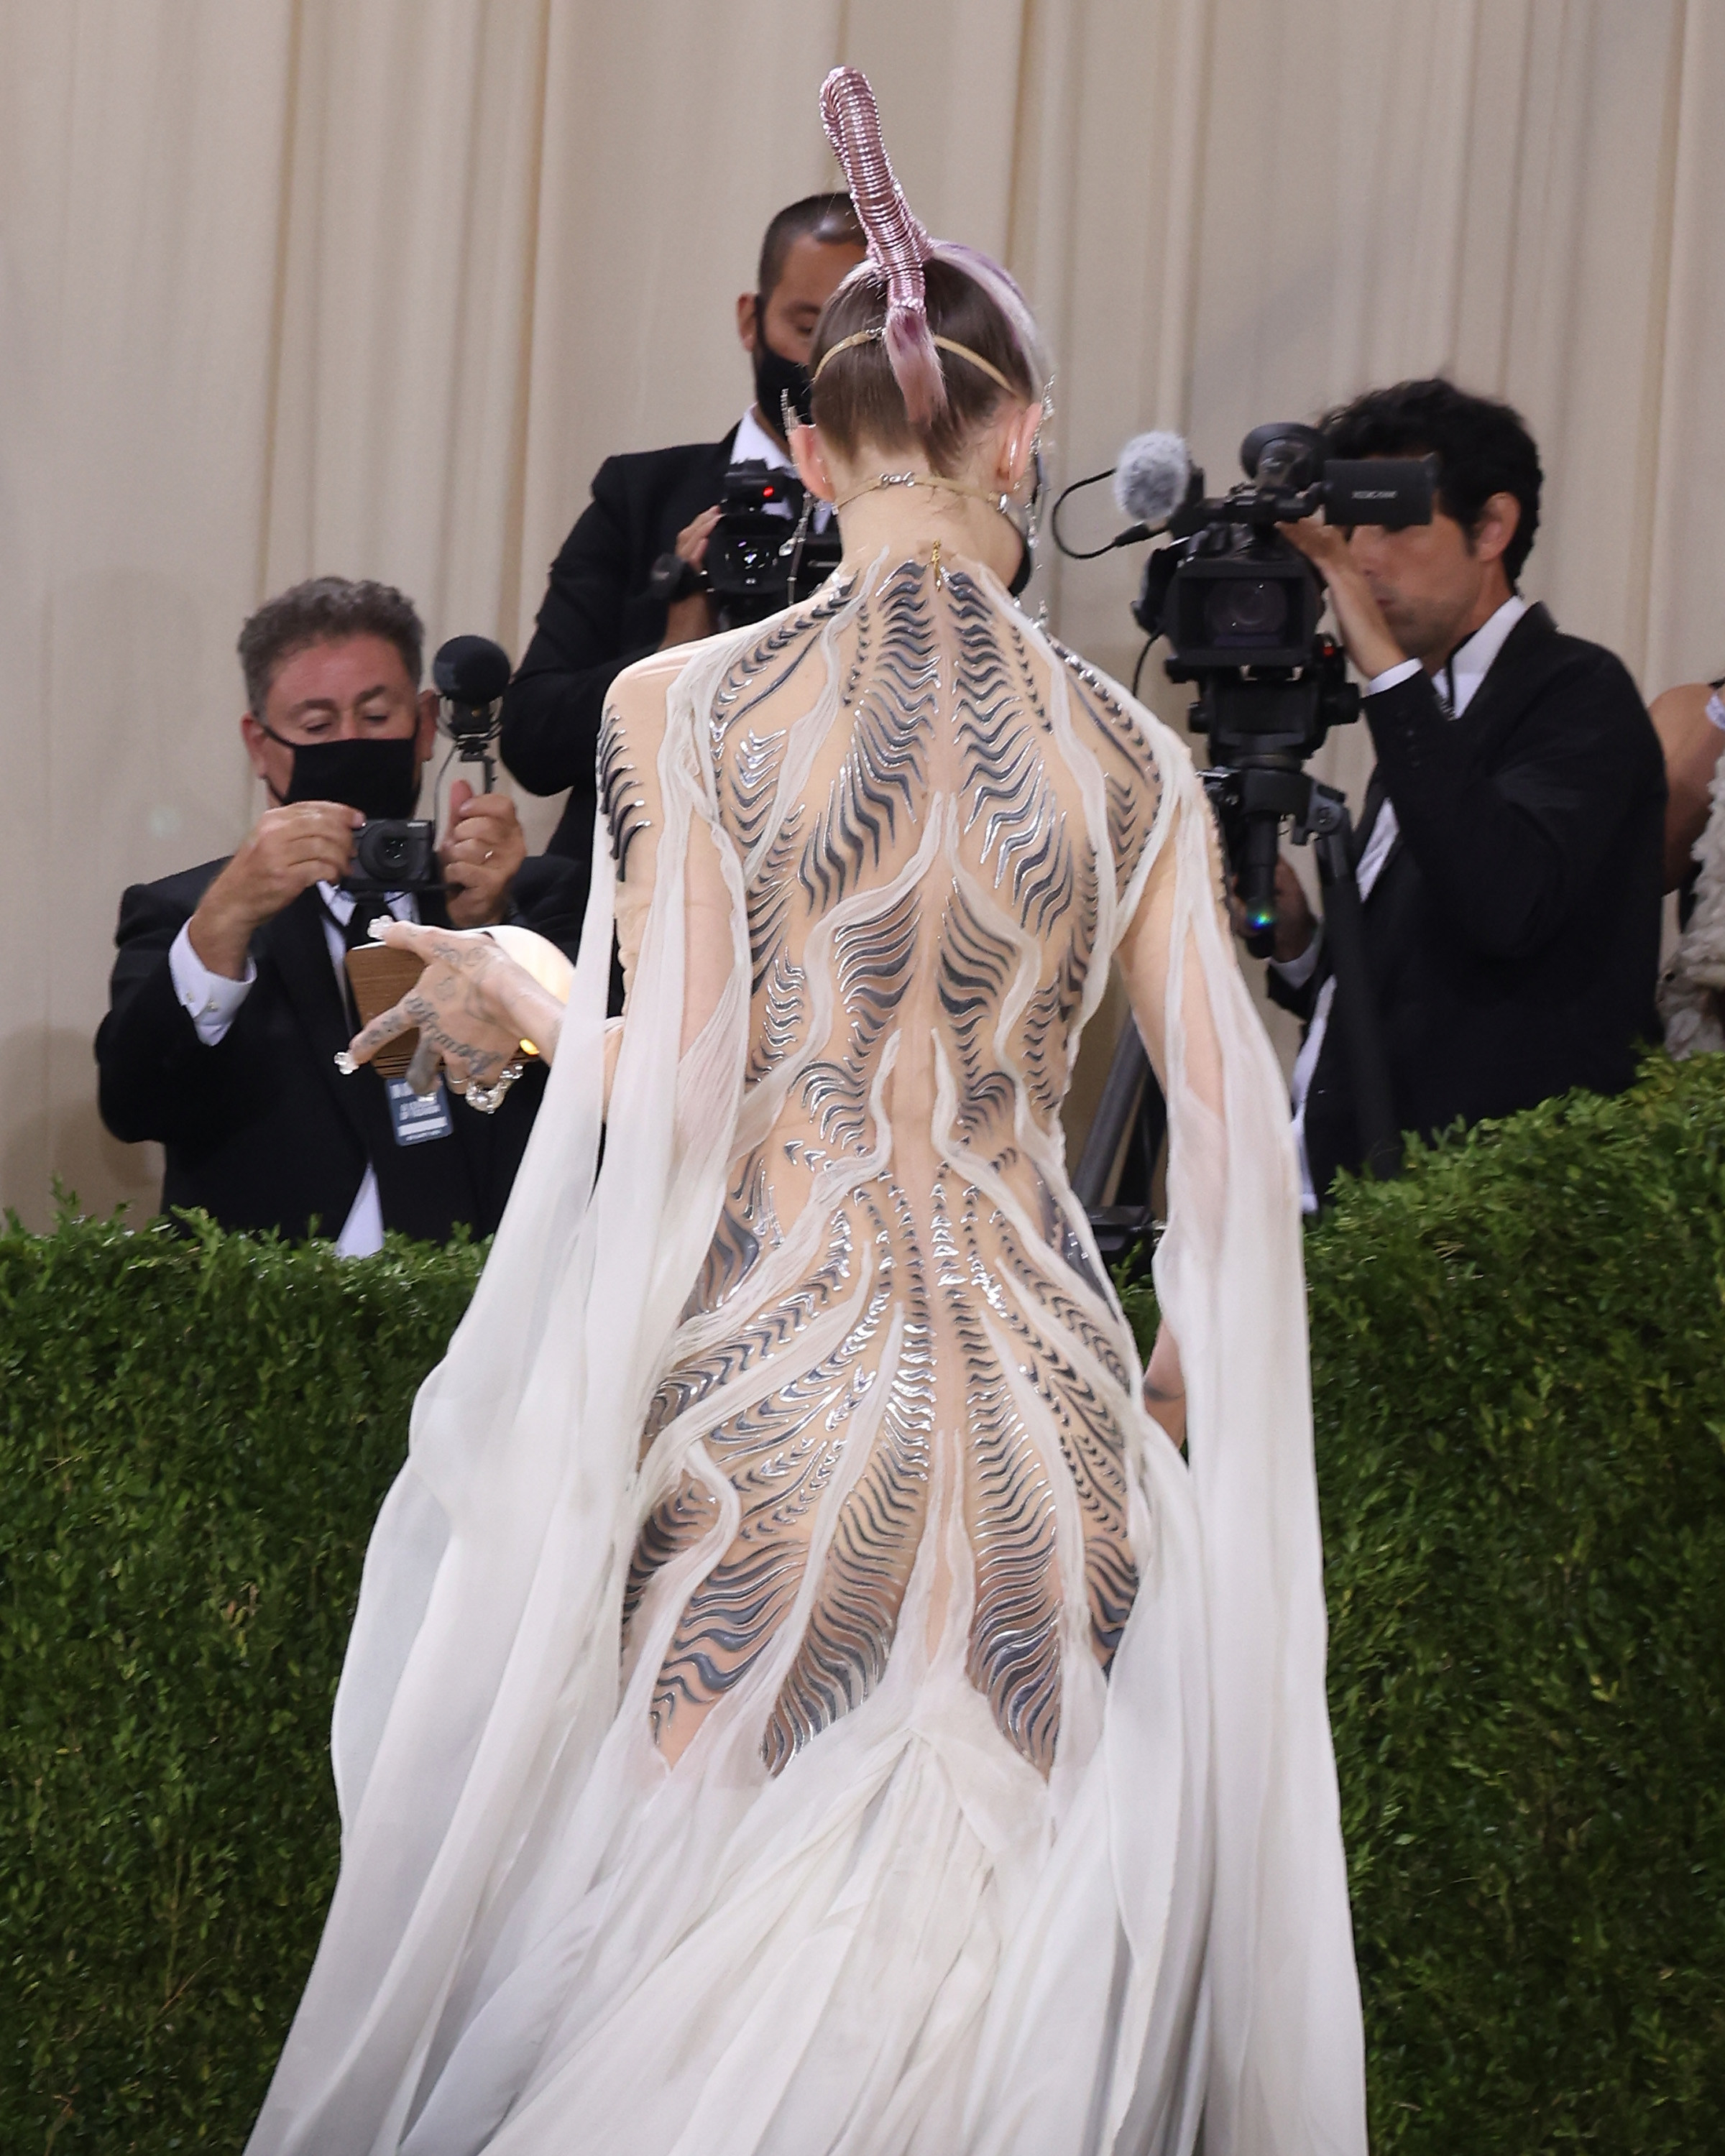 A look at Grimes dress from behind